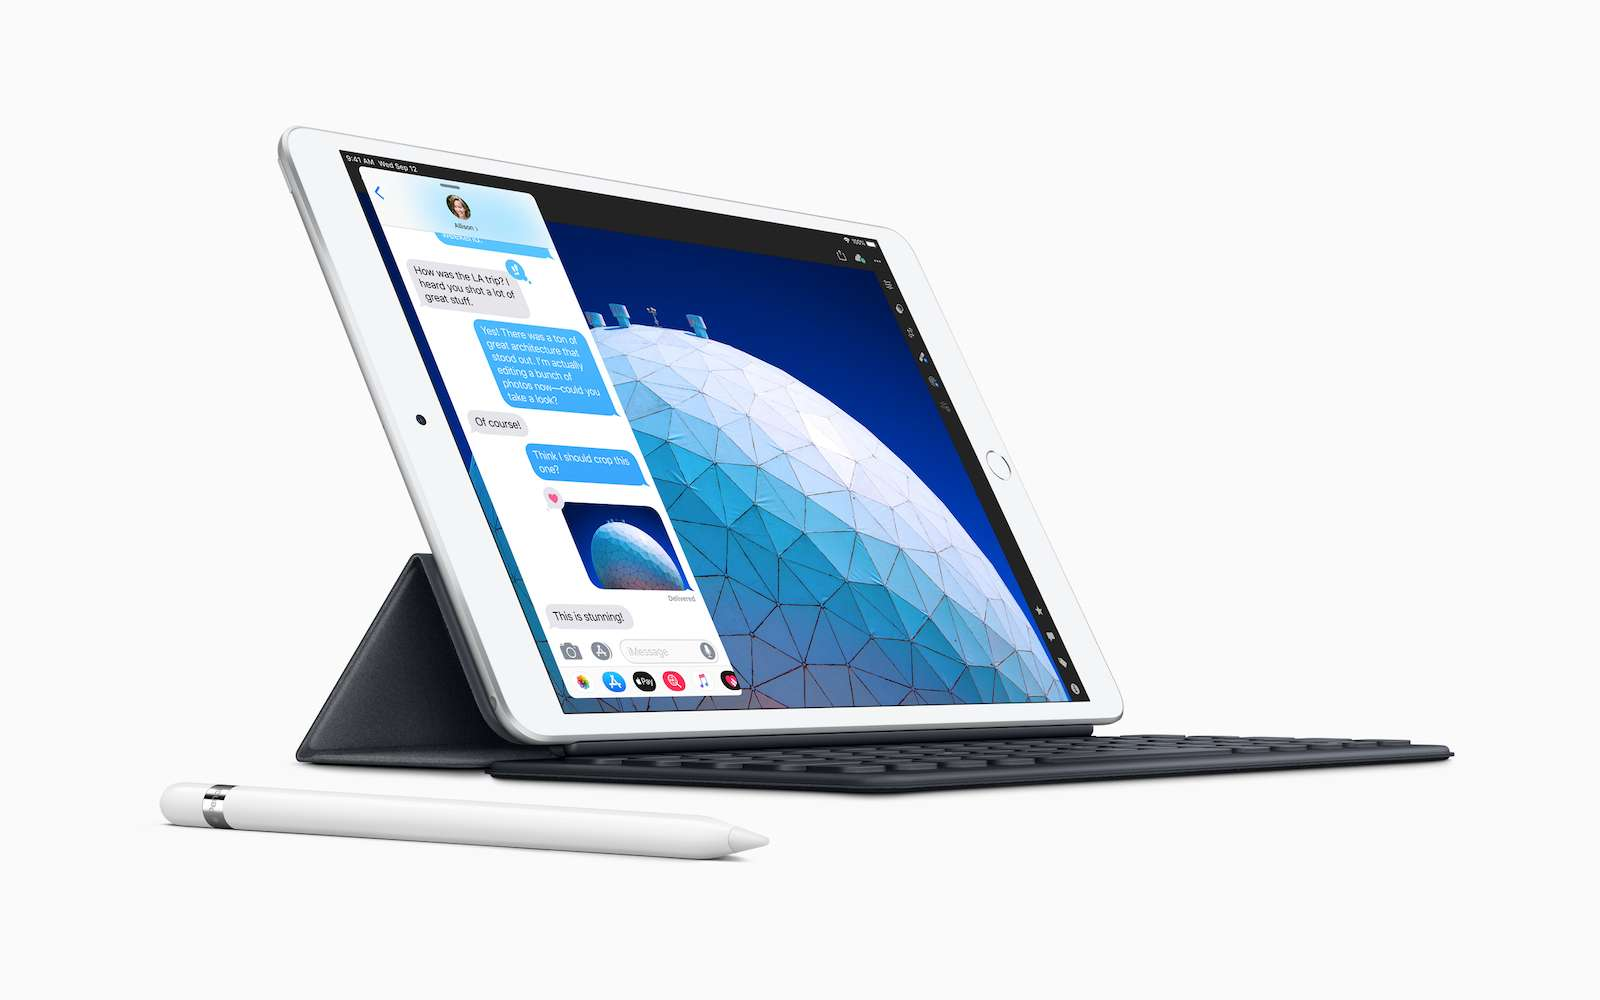 L'iPad Air se transforme en miniportable grâce à l'ajout du Smart Keyboard. © Apple